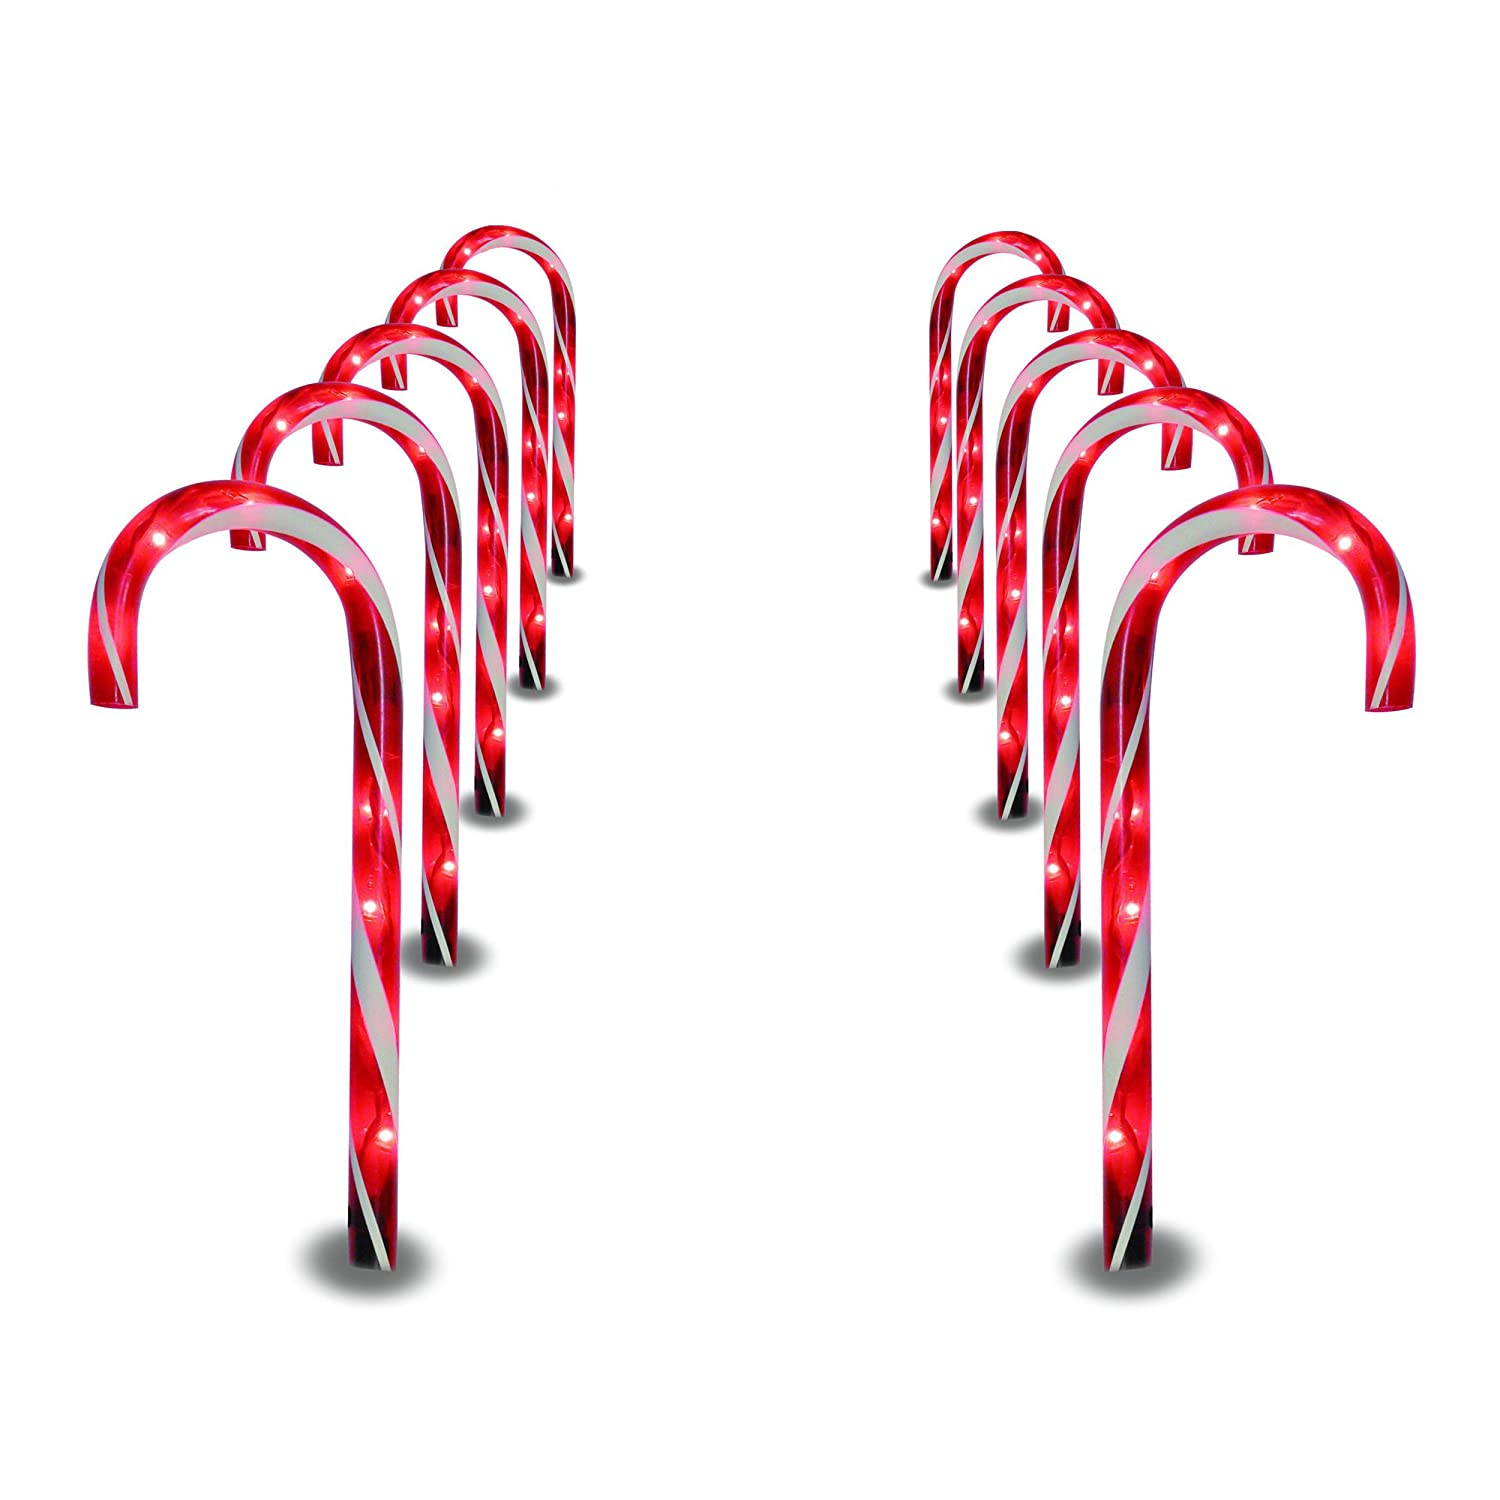 amazoncom prextex christmas candy cane pathway markers set of 10 christmas indooroutdoor decoration lights garden outdoor - Christmas Candy Canes